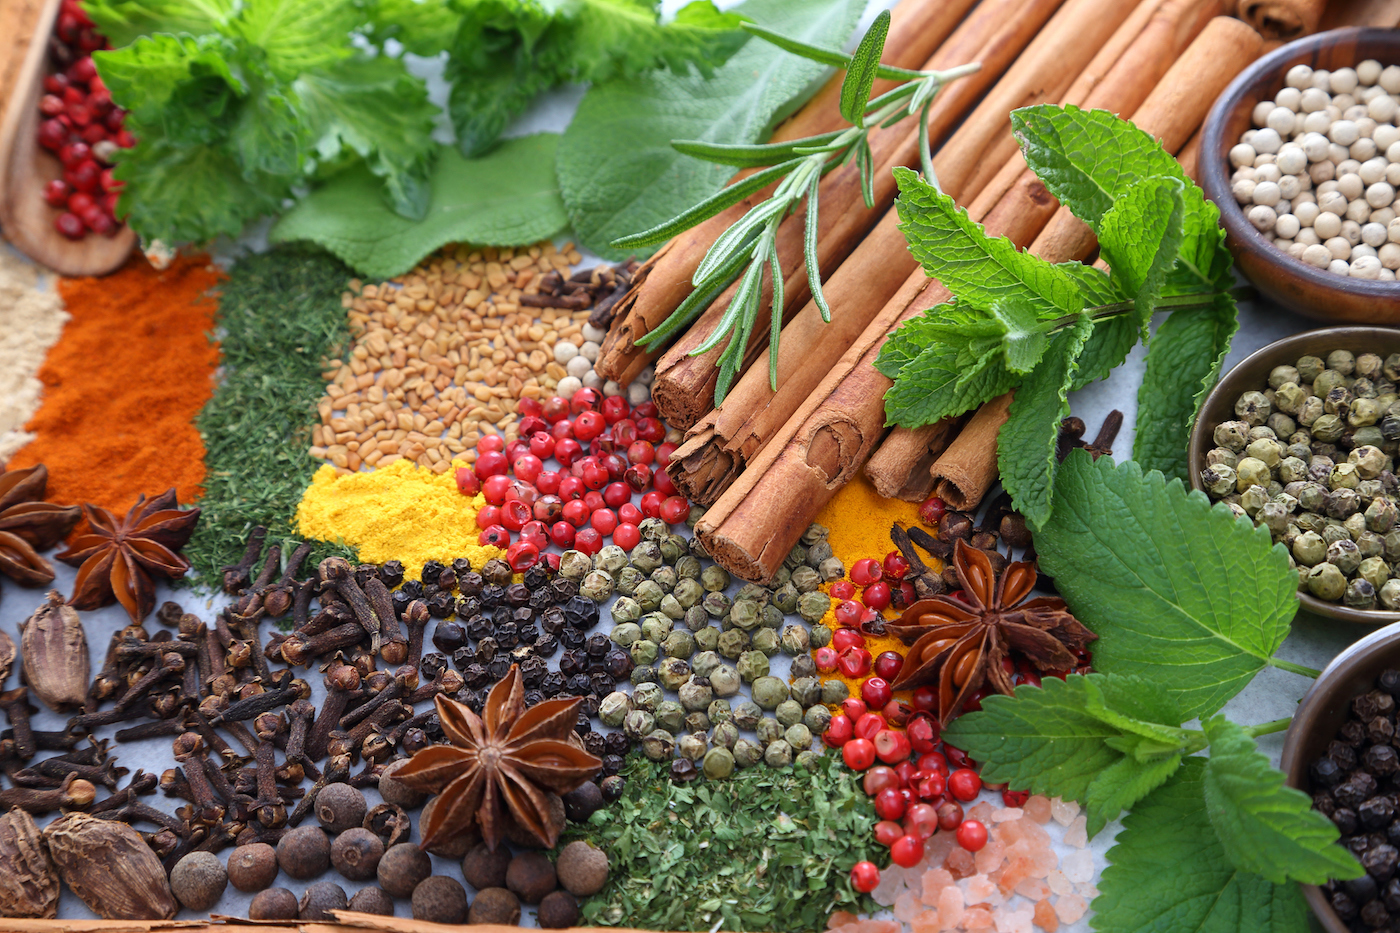 Food ingredients b2b, Spices and herbs